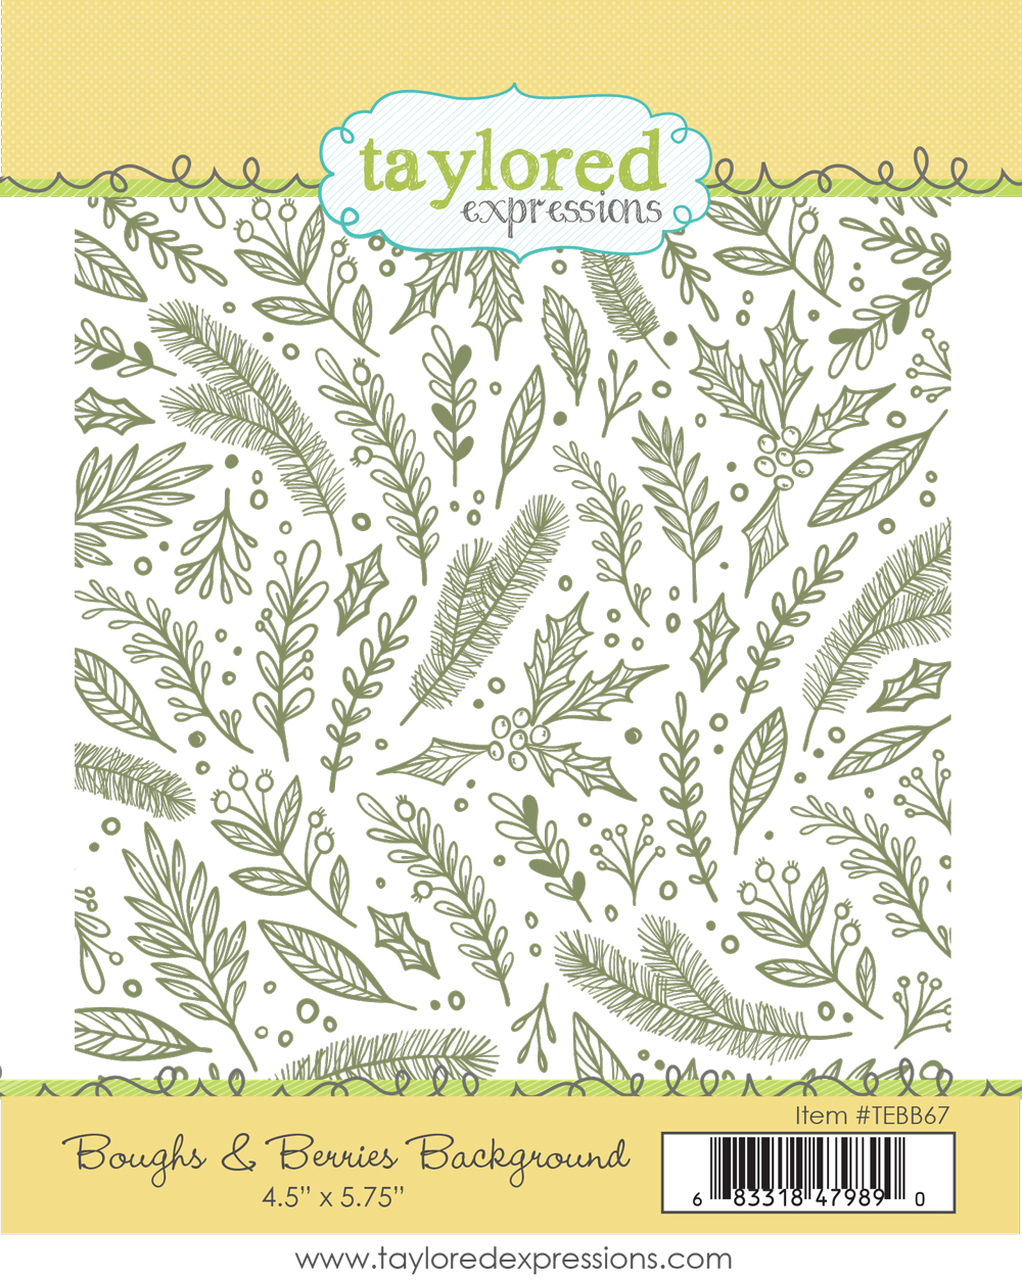 Taylored Expression - Boughs & Berries Background